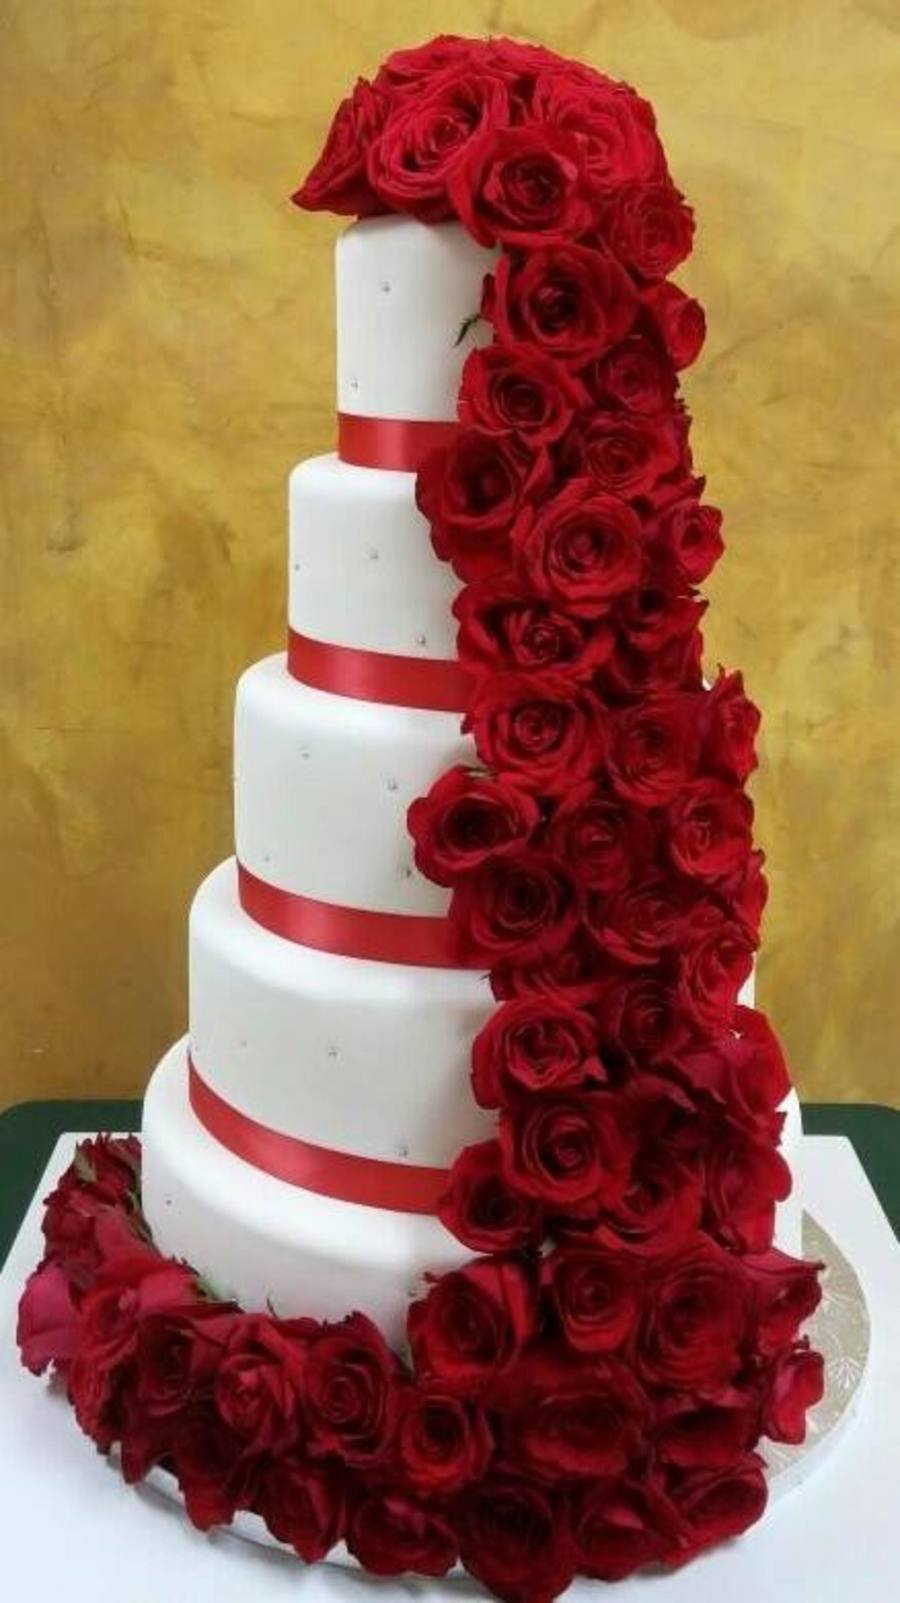 Red Roses Waterfall Cake Cakecentral Com